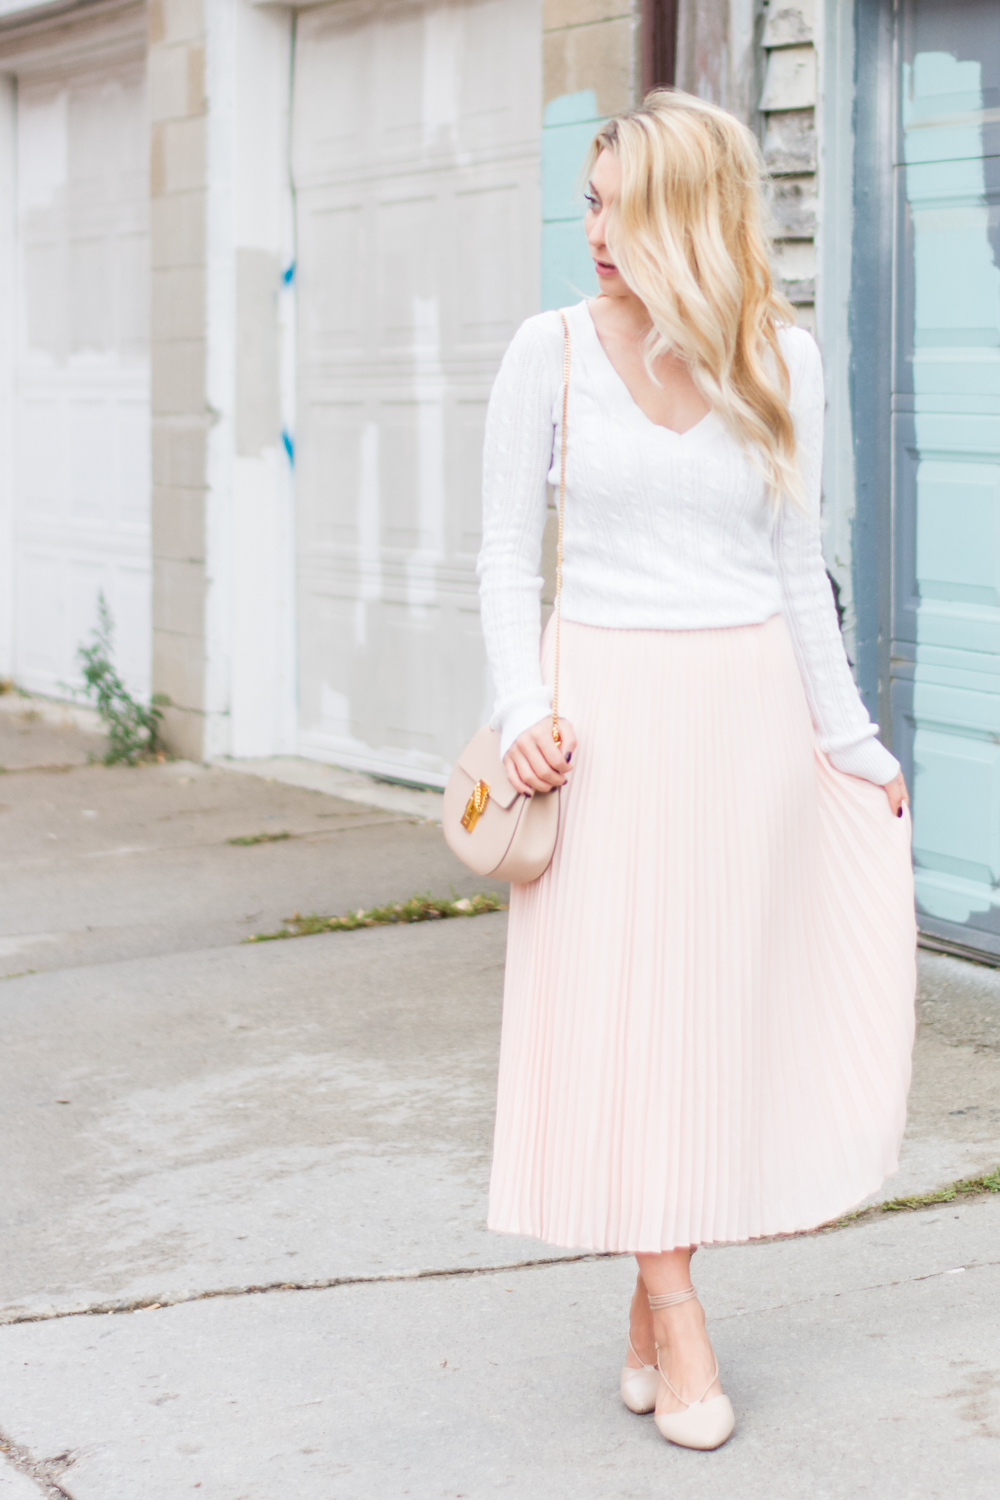 3745f-joelle-anello-la-petite-noob-blush-pink-pleated-midi-skirt-fall-outfit-forever21.jpg